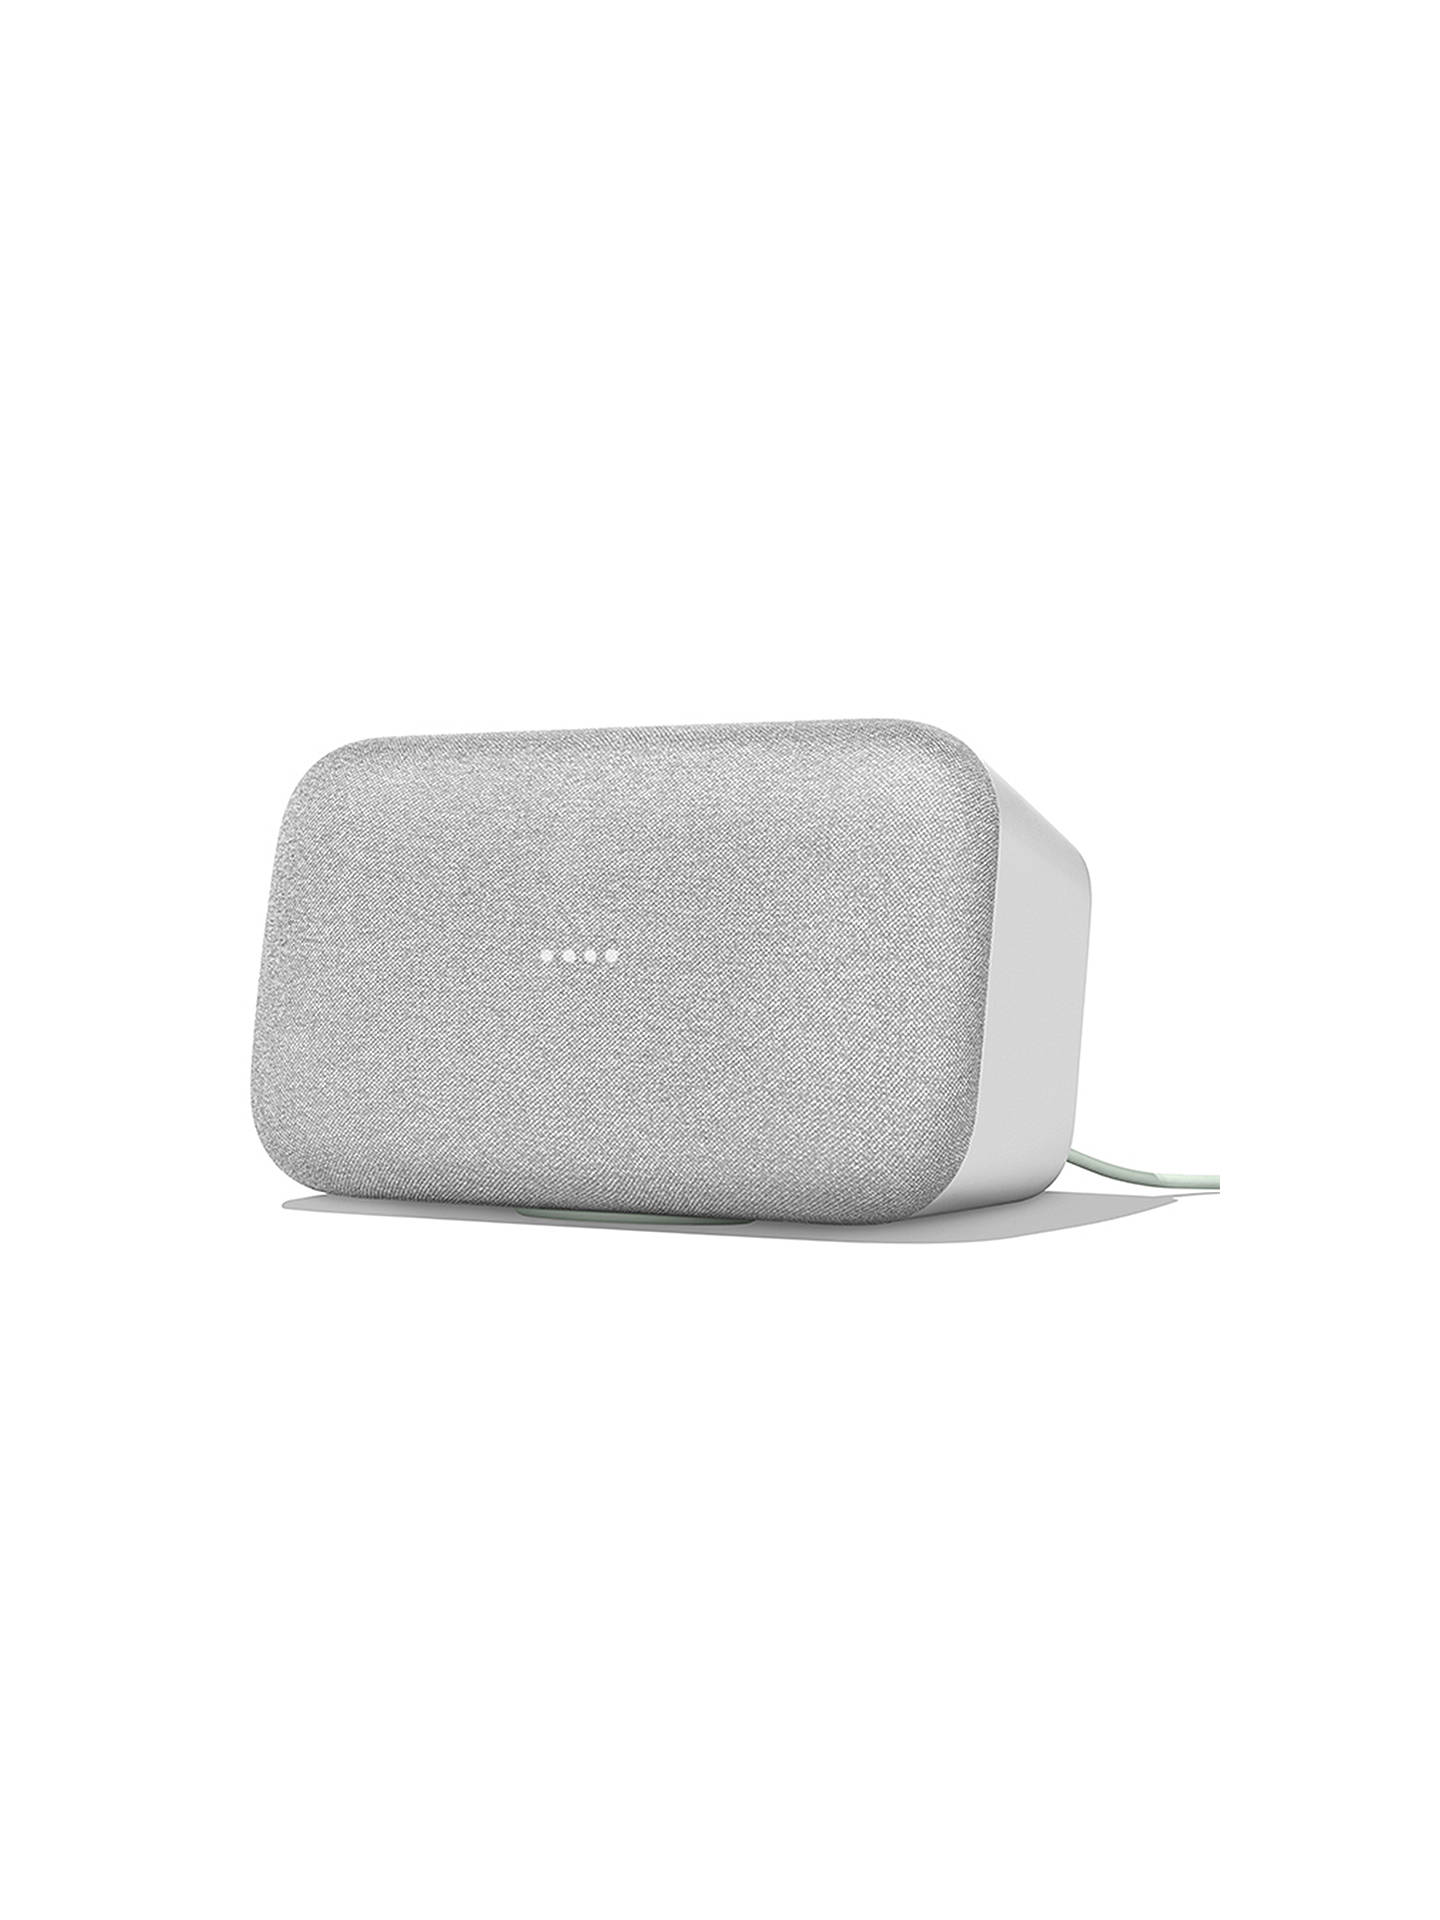 BuyGoogle Home Max Hands-Free Smart Speaker, Chalk Online at johnlewis.com